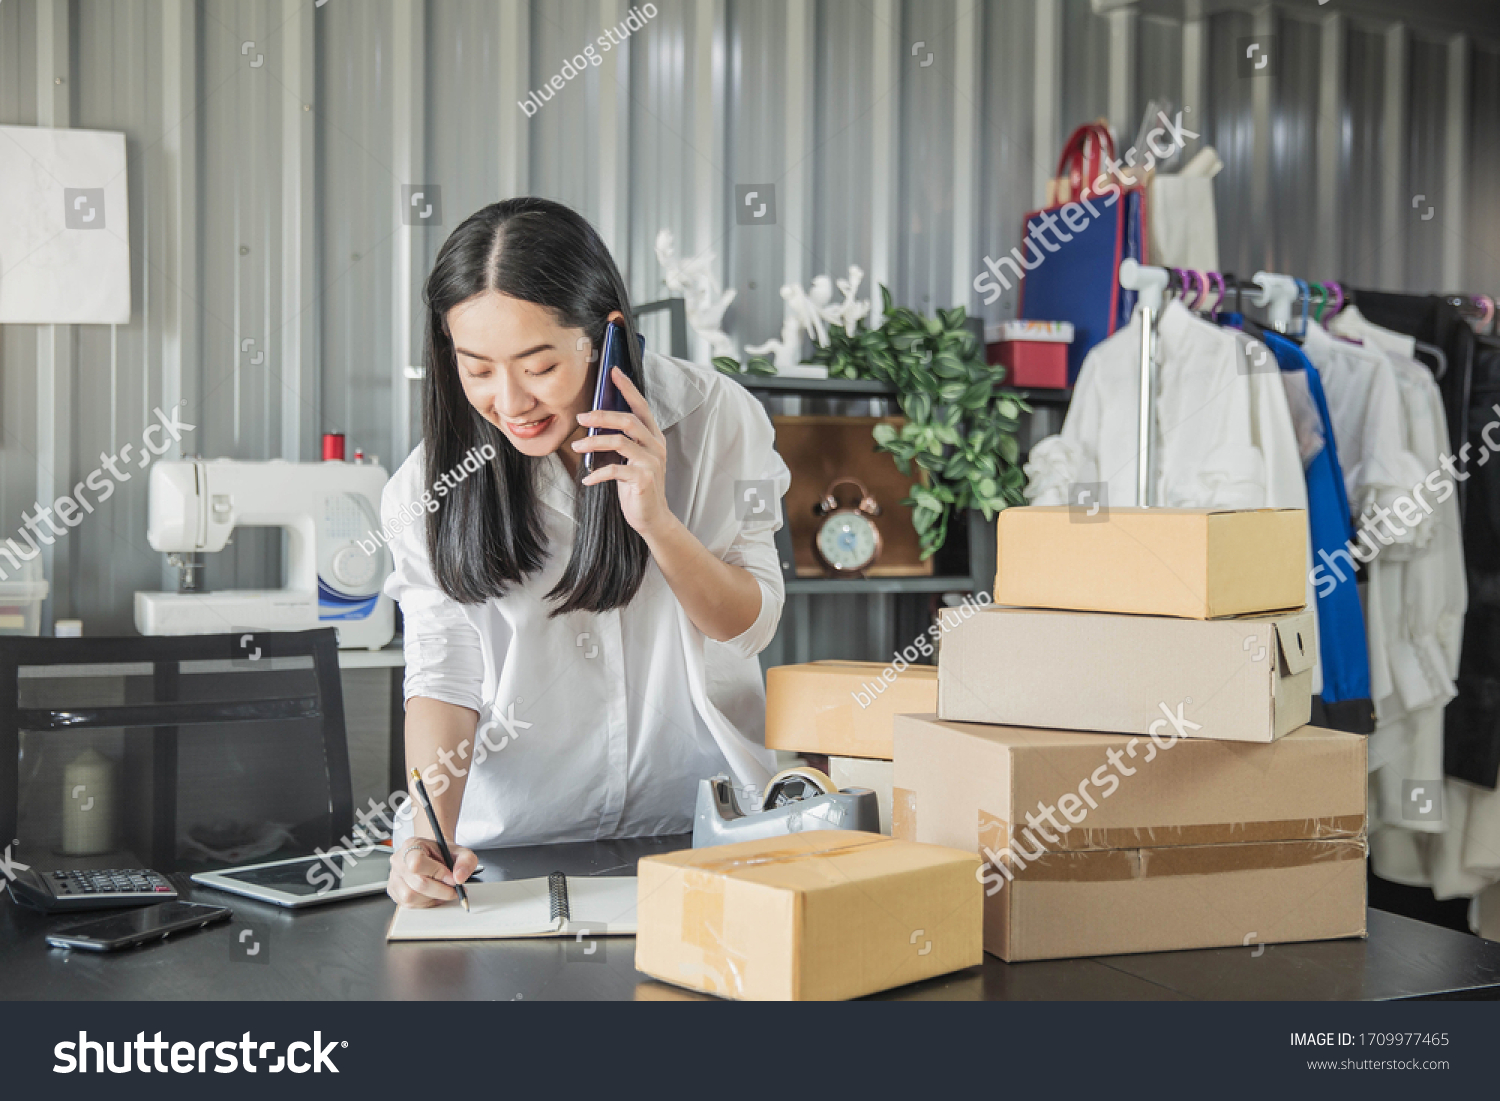 Young business woman working online e-commerce shopping at her shop. Young woman seller prepare parcel box of product for deliver to customer. Online selling, e-commerce. #1709977465